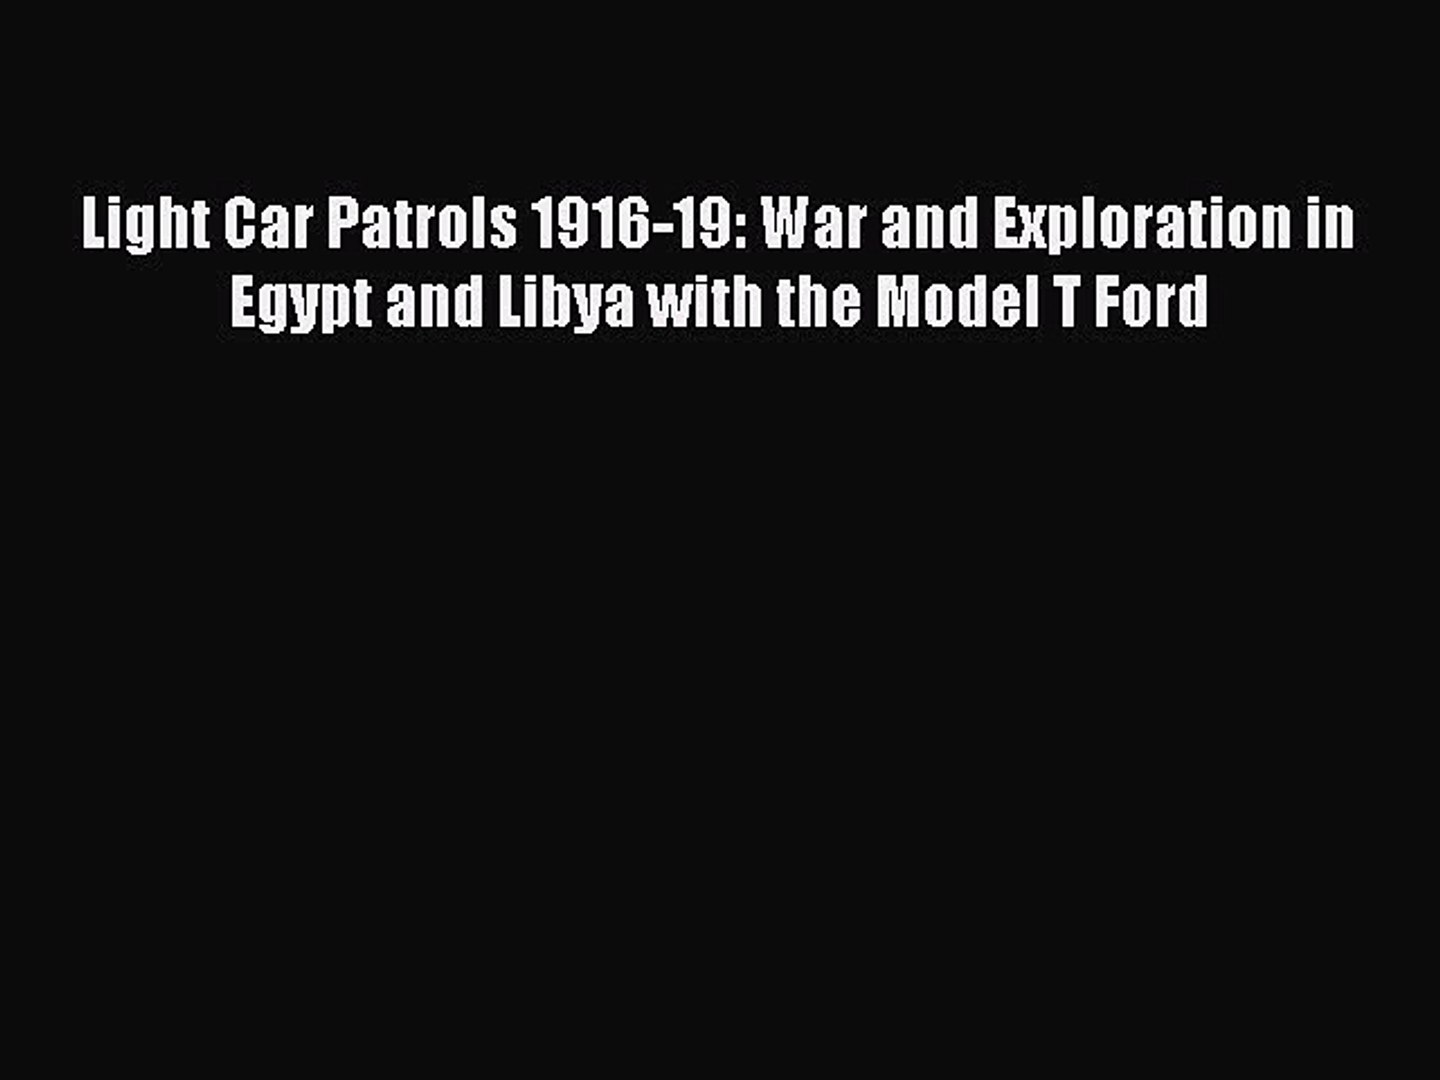 Read Light Car Patrols 1916-19: War and Exploration in Egypt and Libya with the Model T Ford